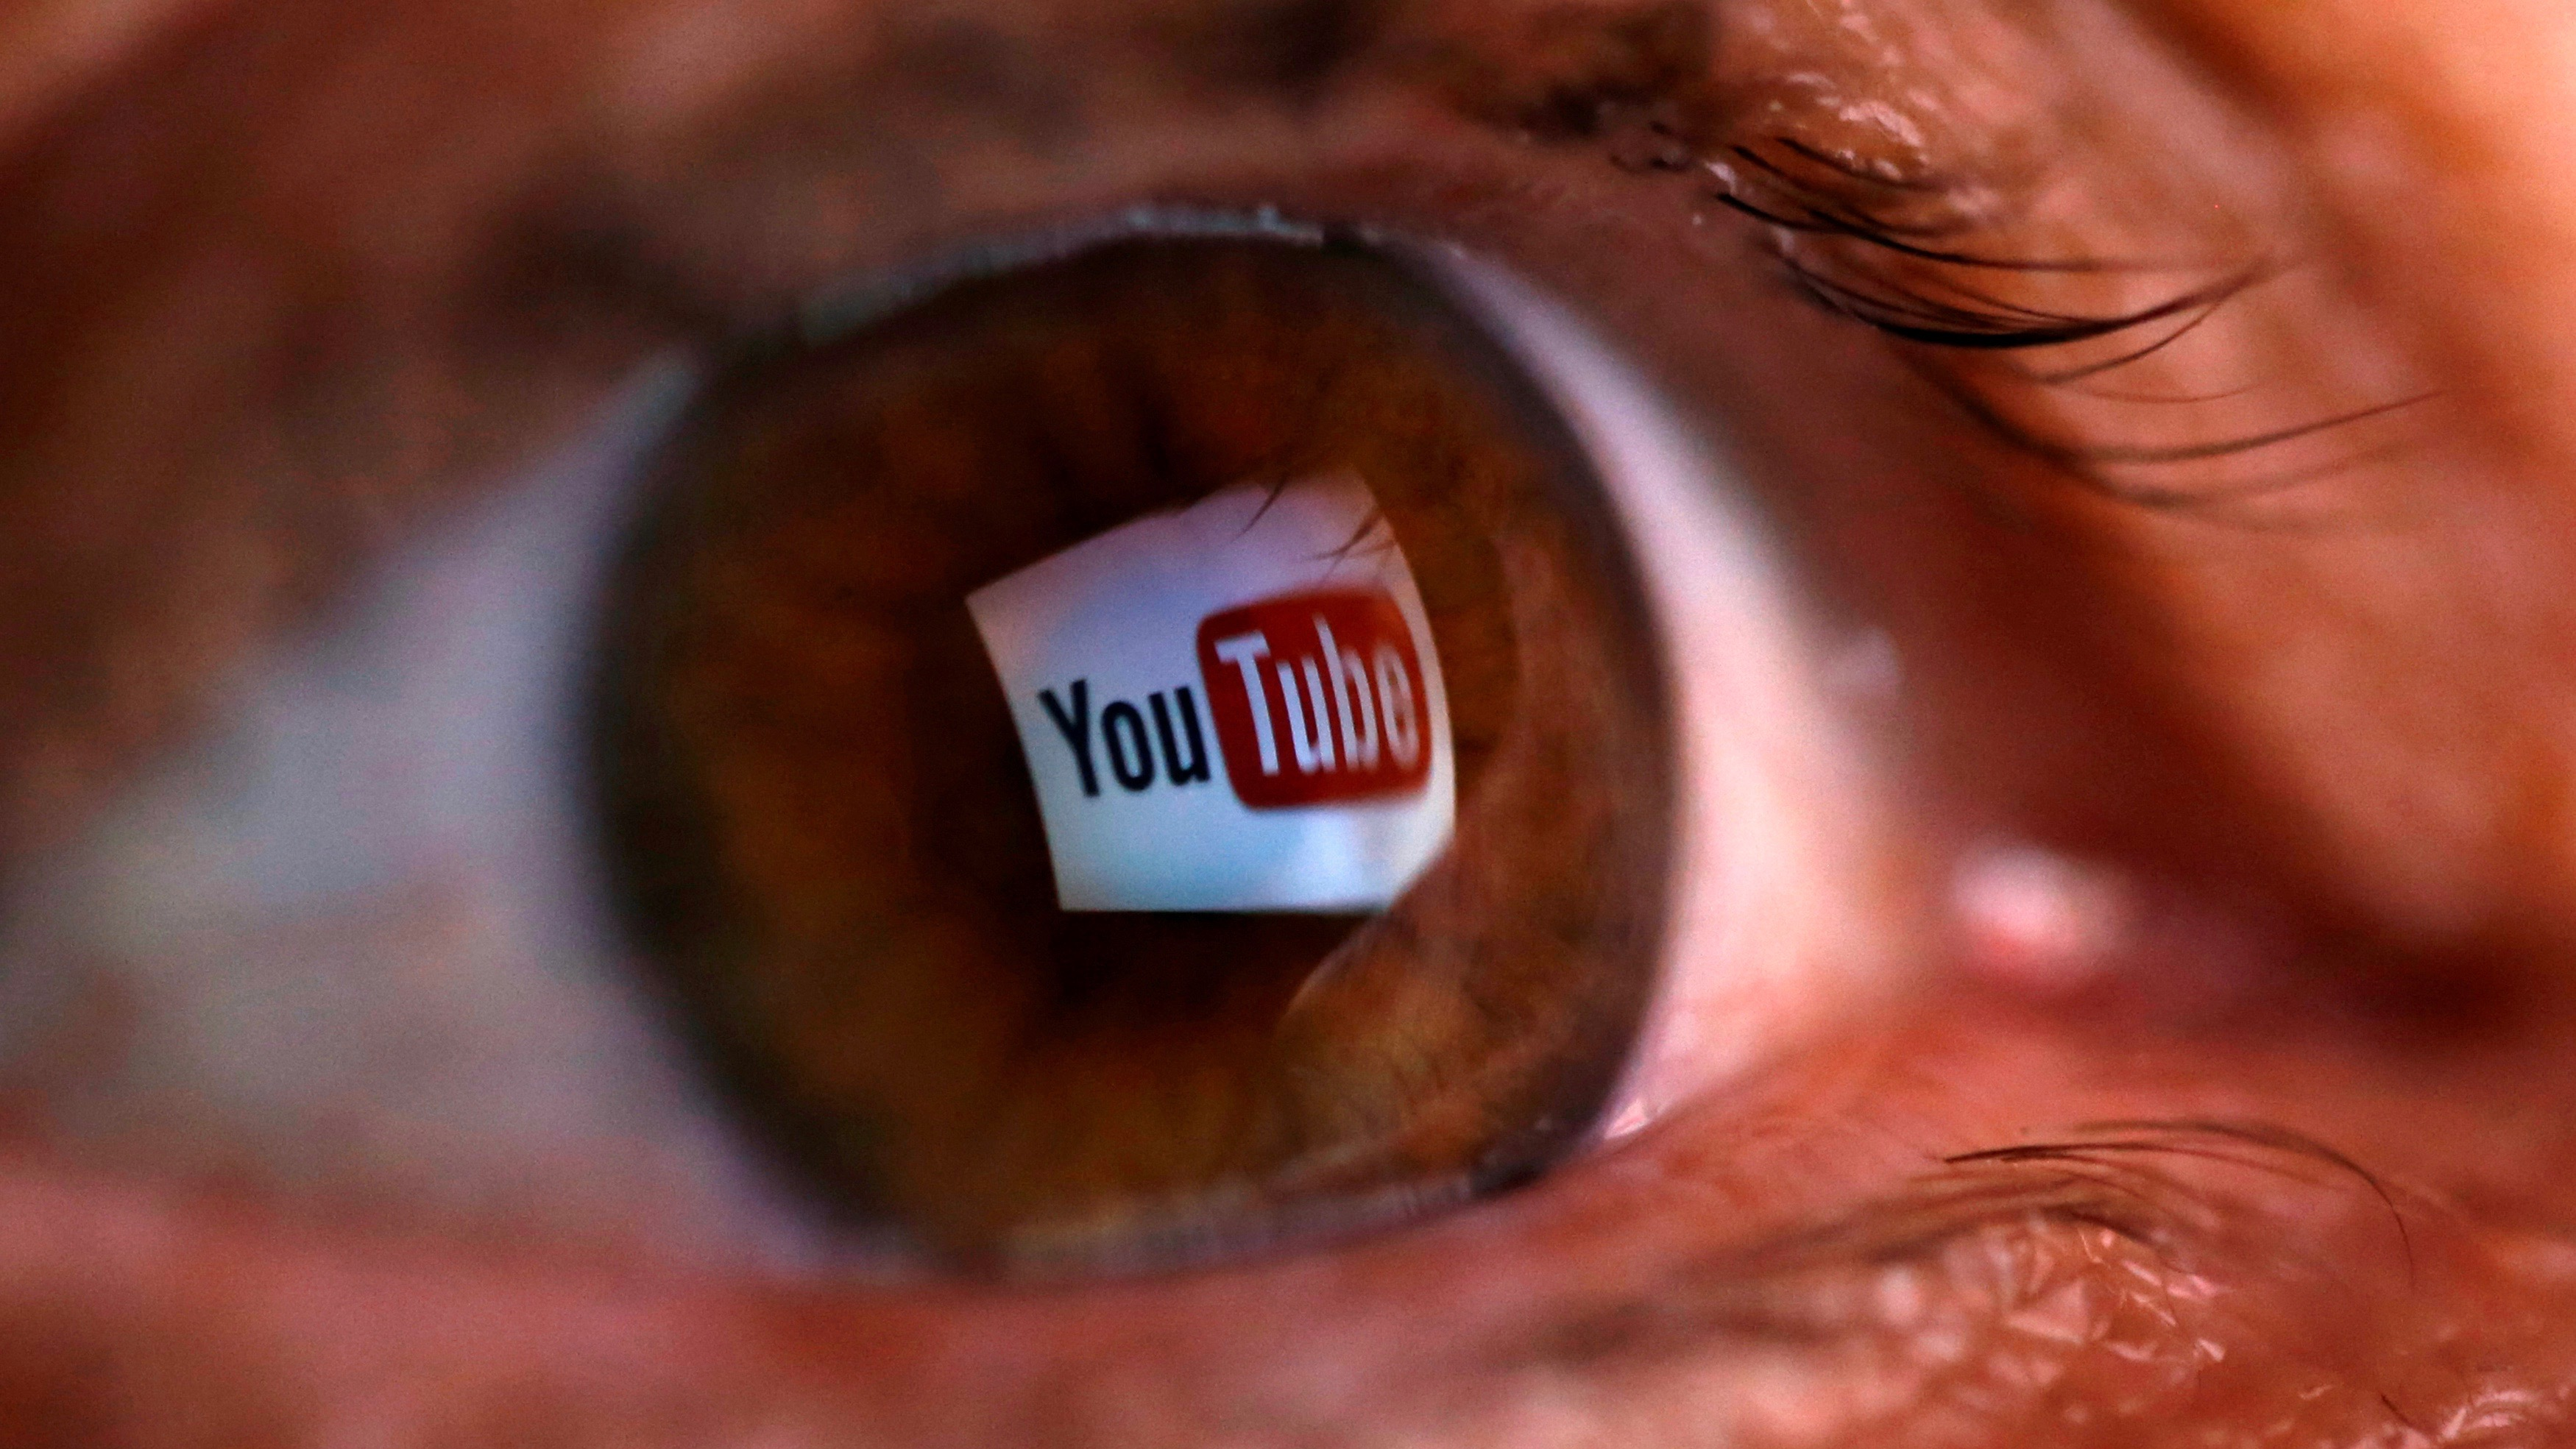 YouTube logo reflected in eye.